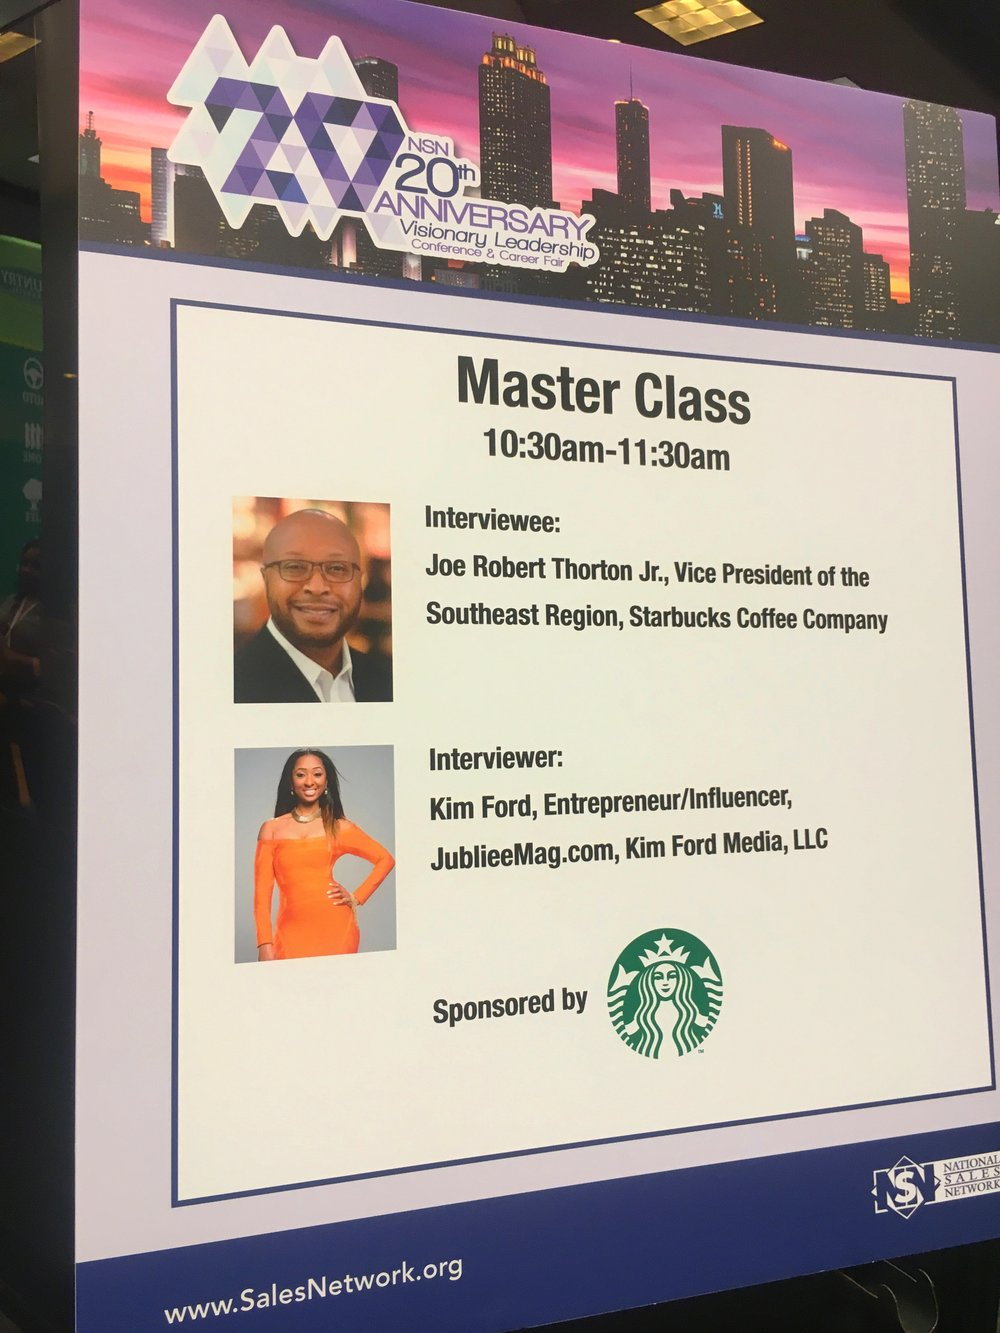 Led a master class series for the National Sales Network with the regional VP of Starbucks, Joe Robert Thornton, Jr.